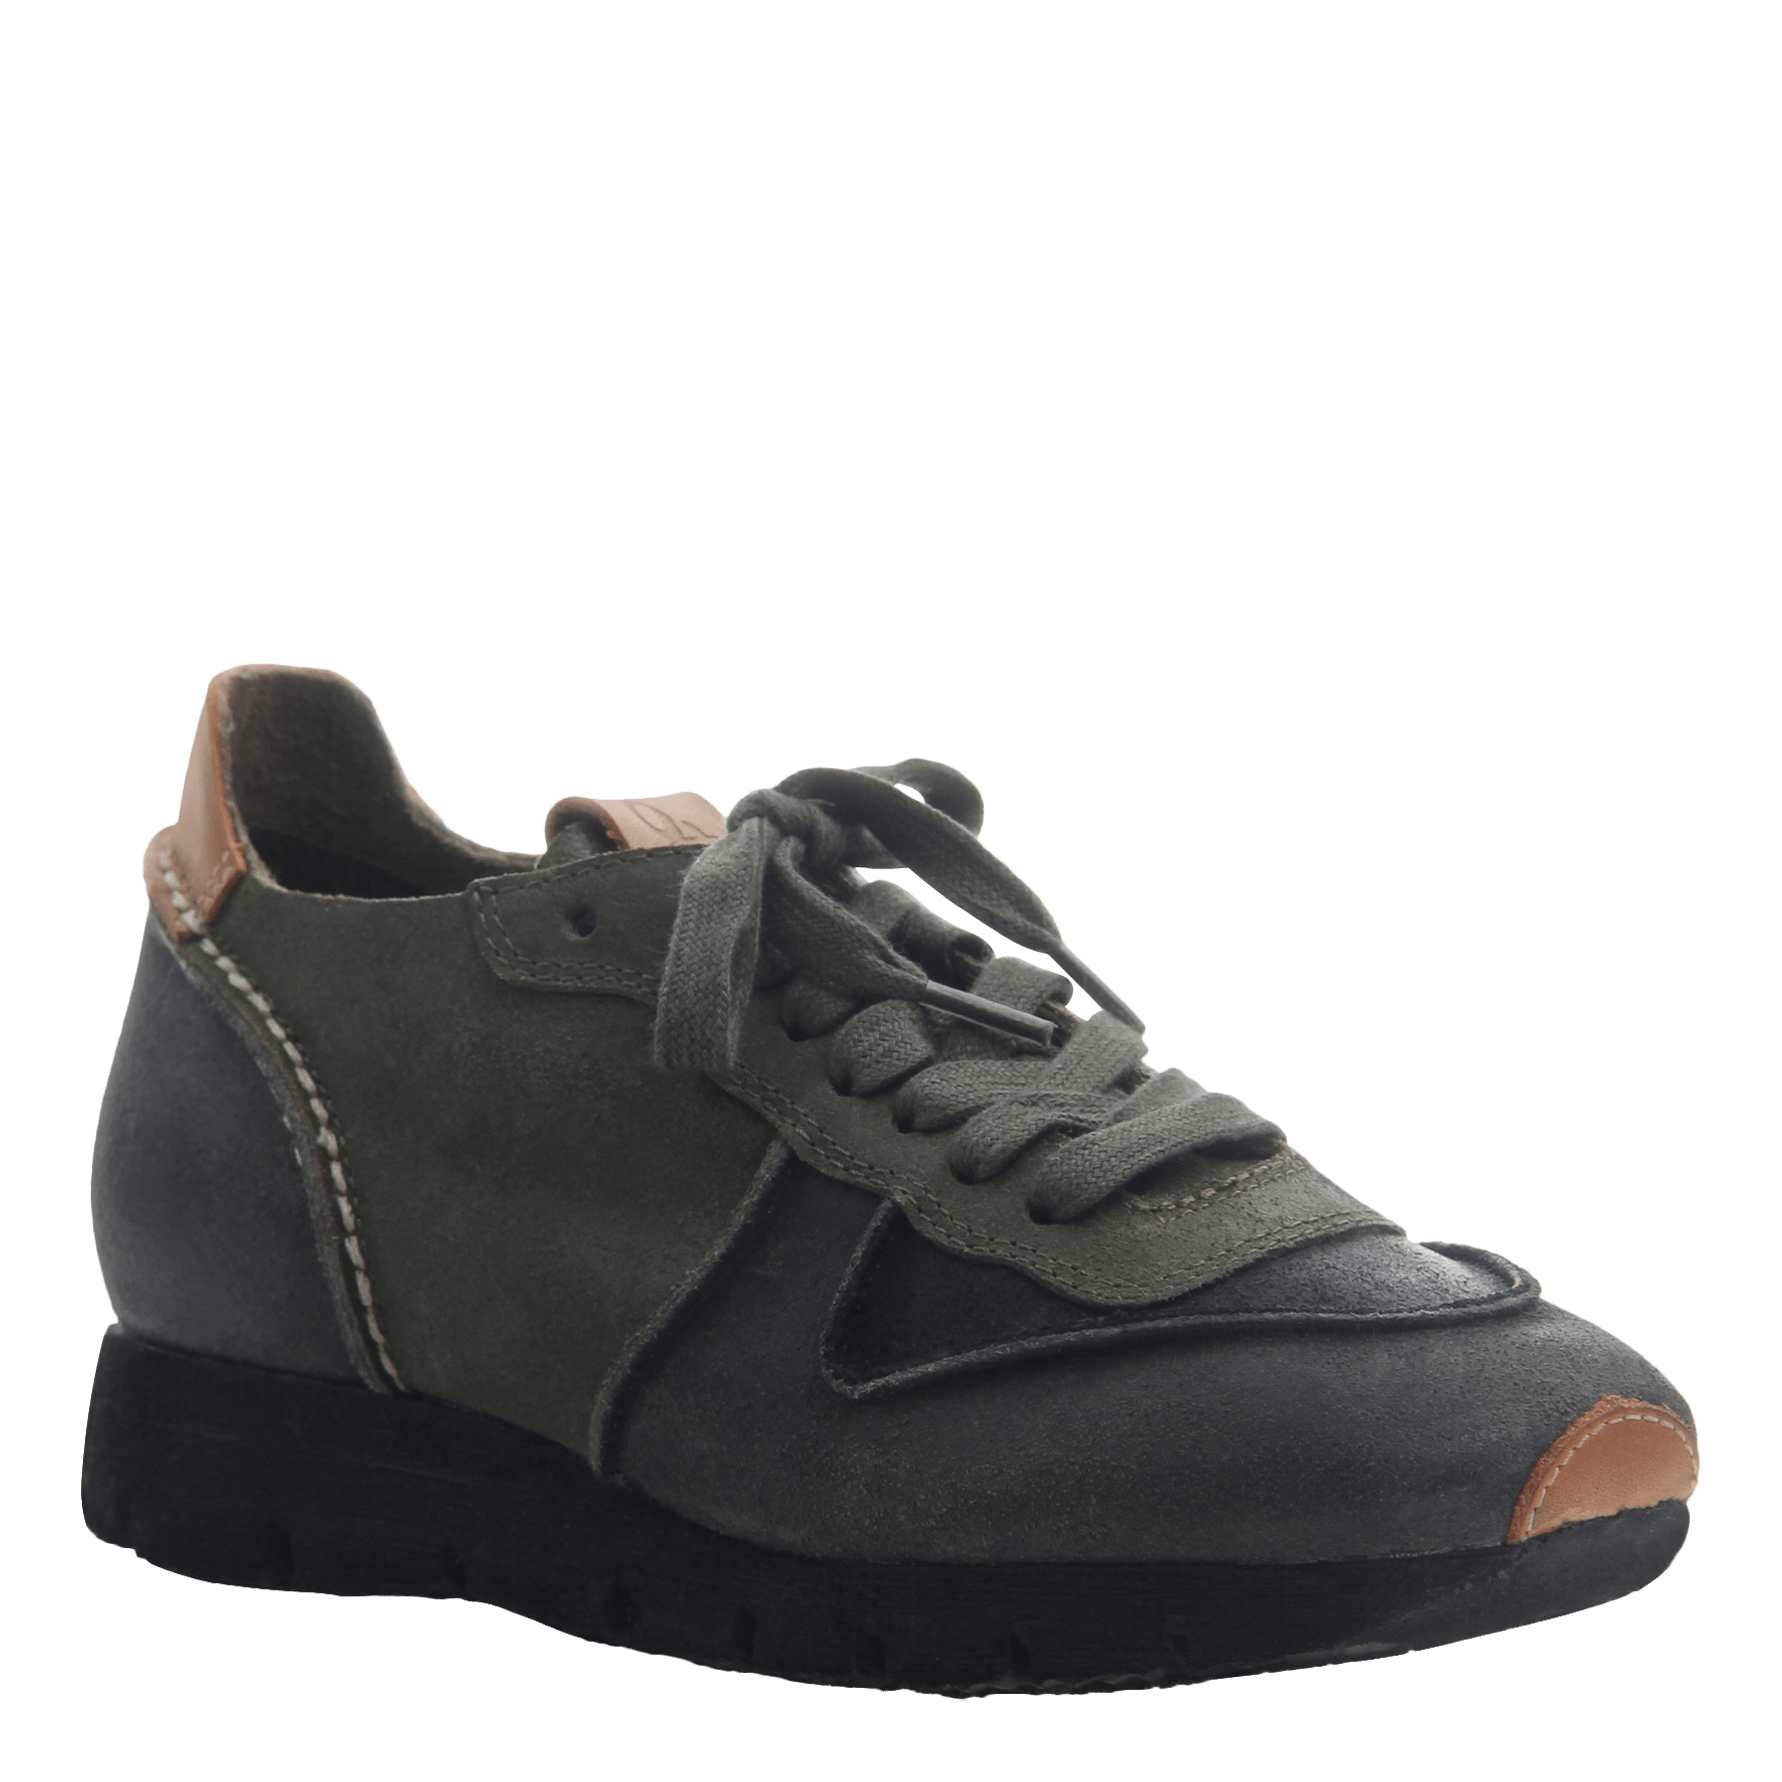 Women' lace up sneaker the snowbird in dark grey